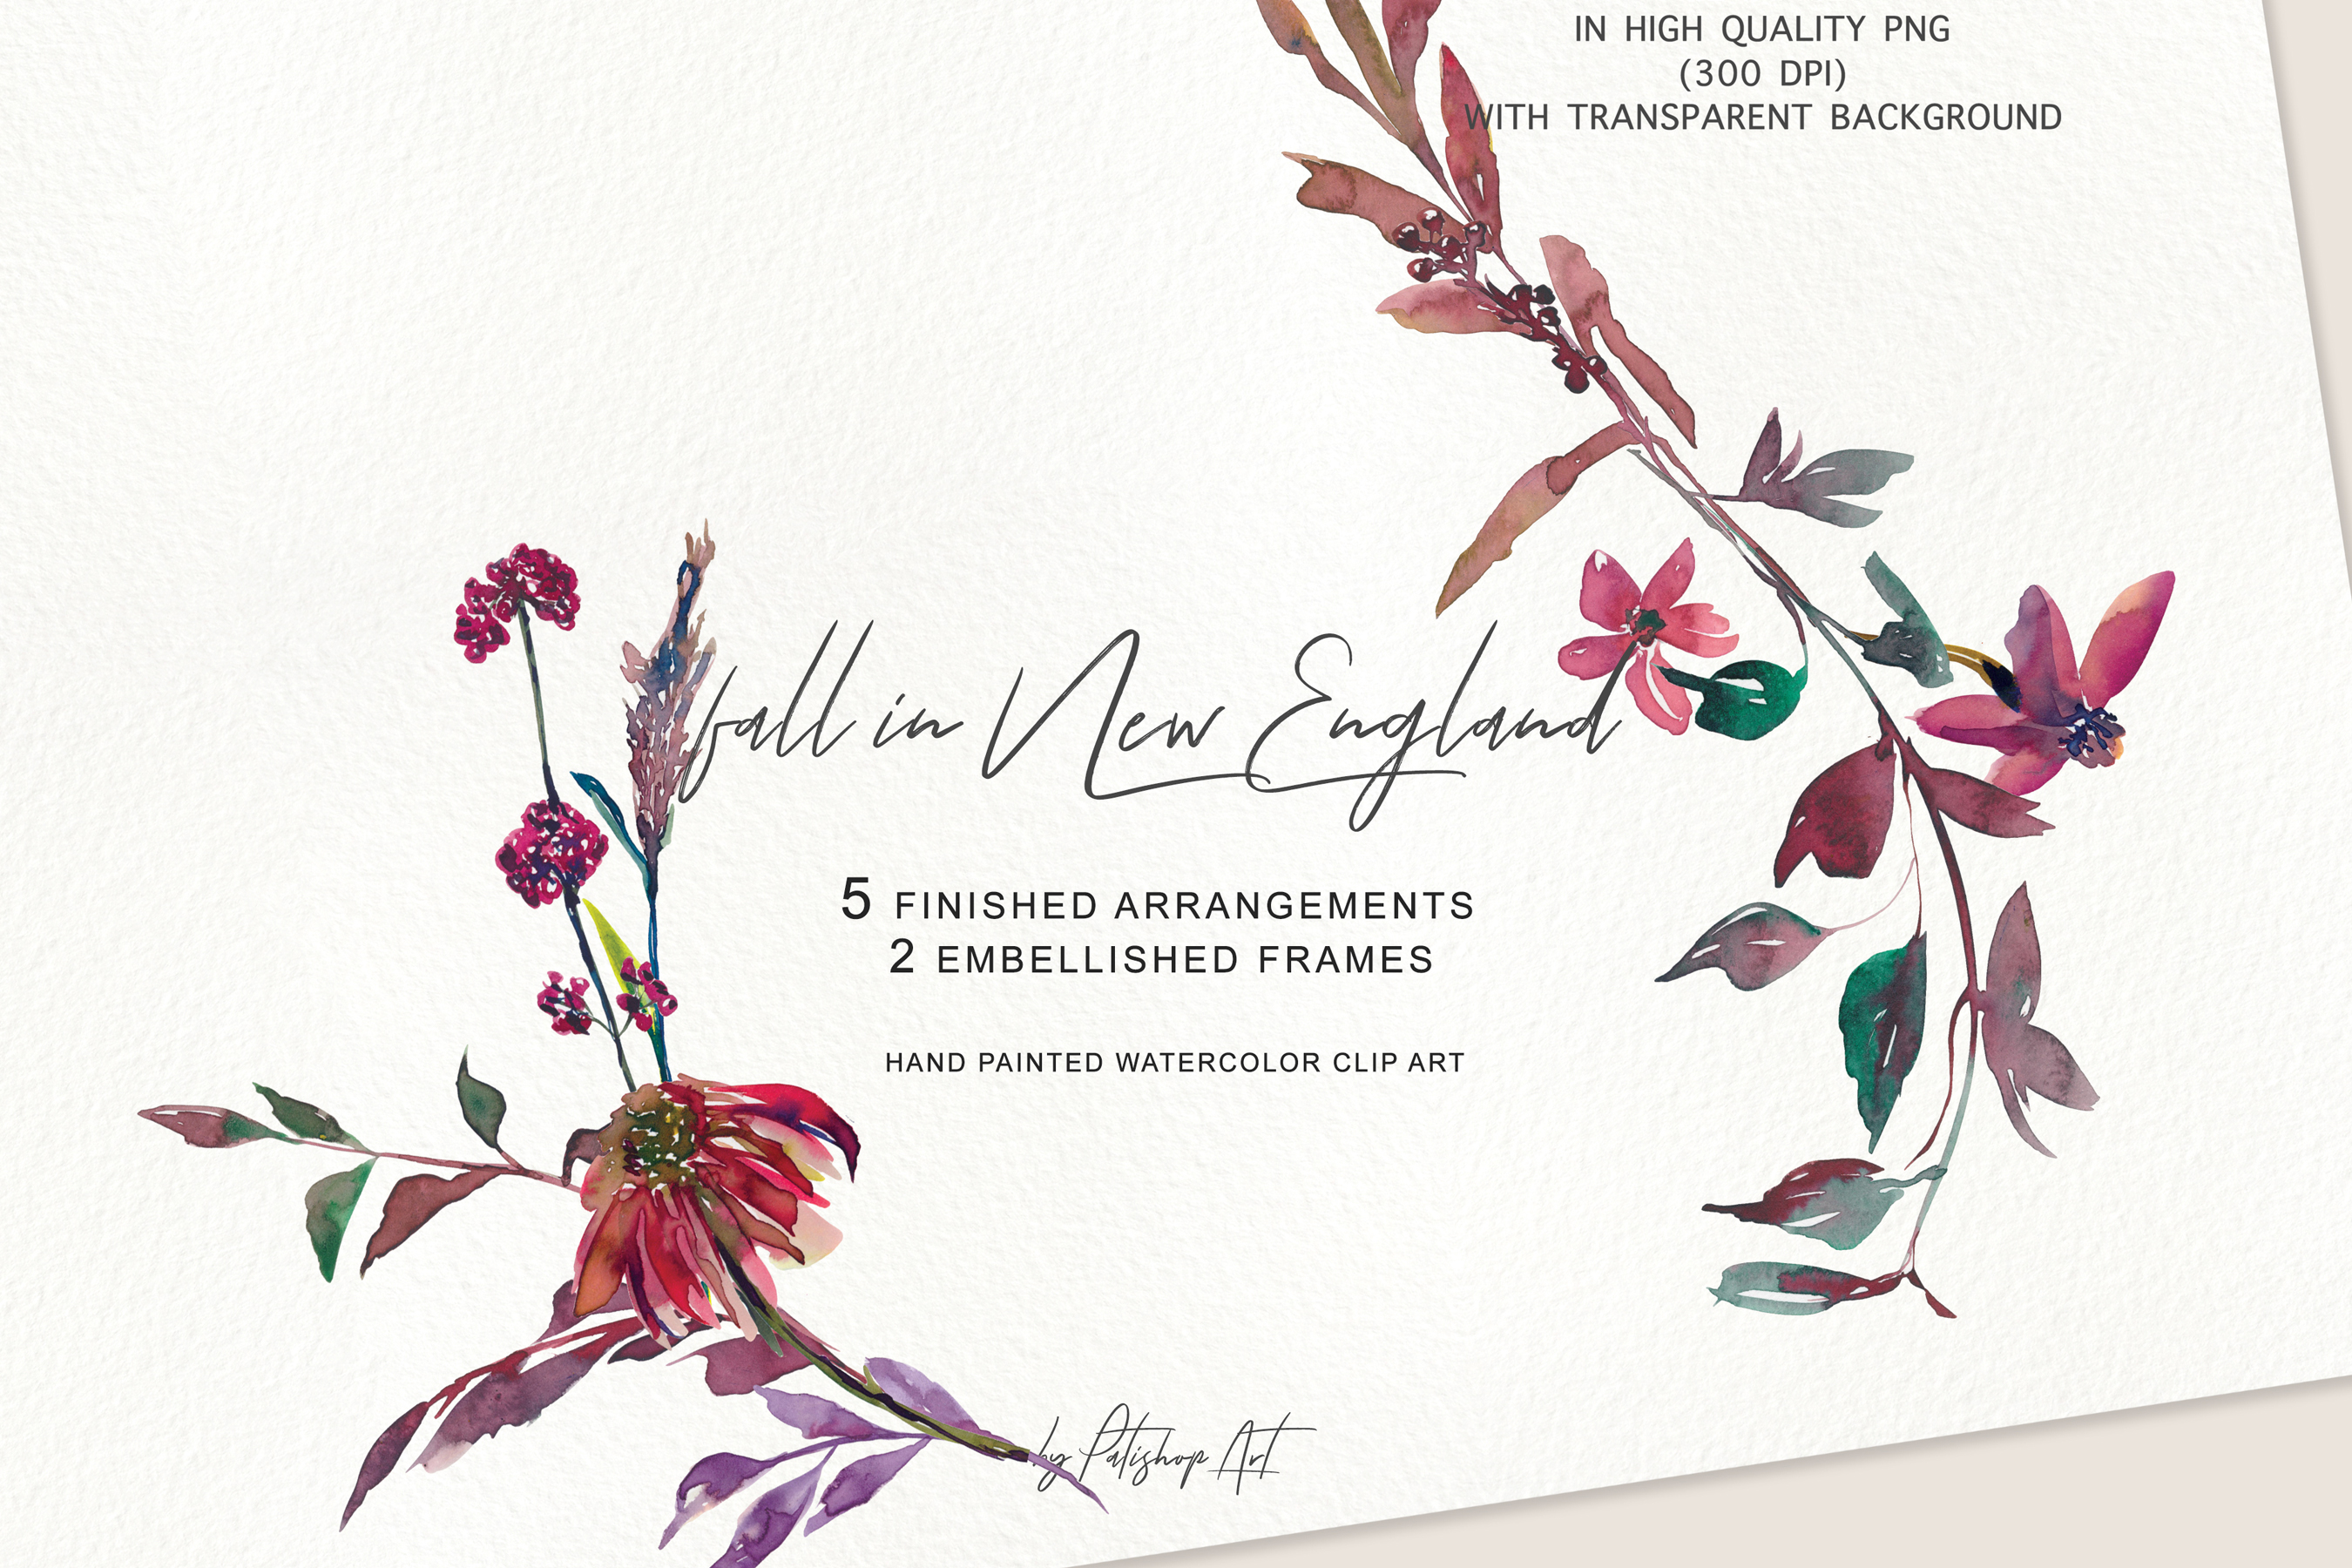 Watercolor Fall Twigs Herbs Flowers Arrangements Clipart example image 5